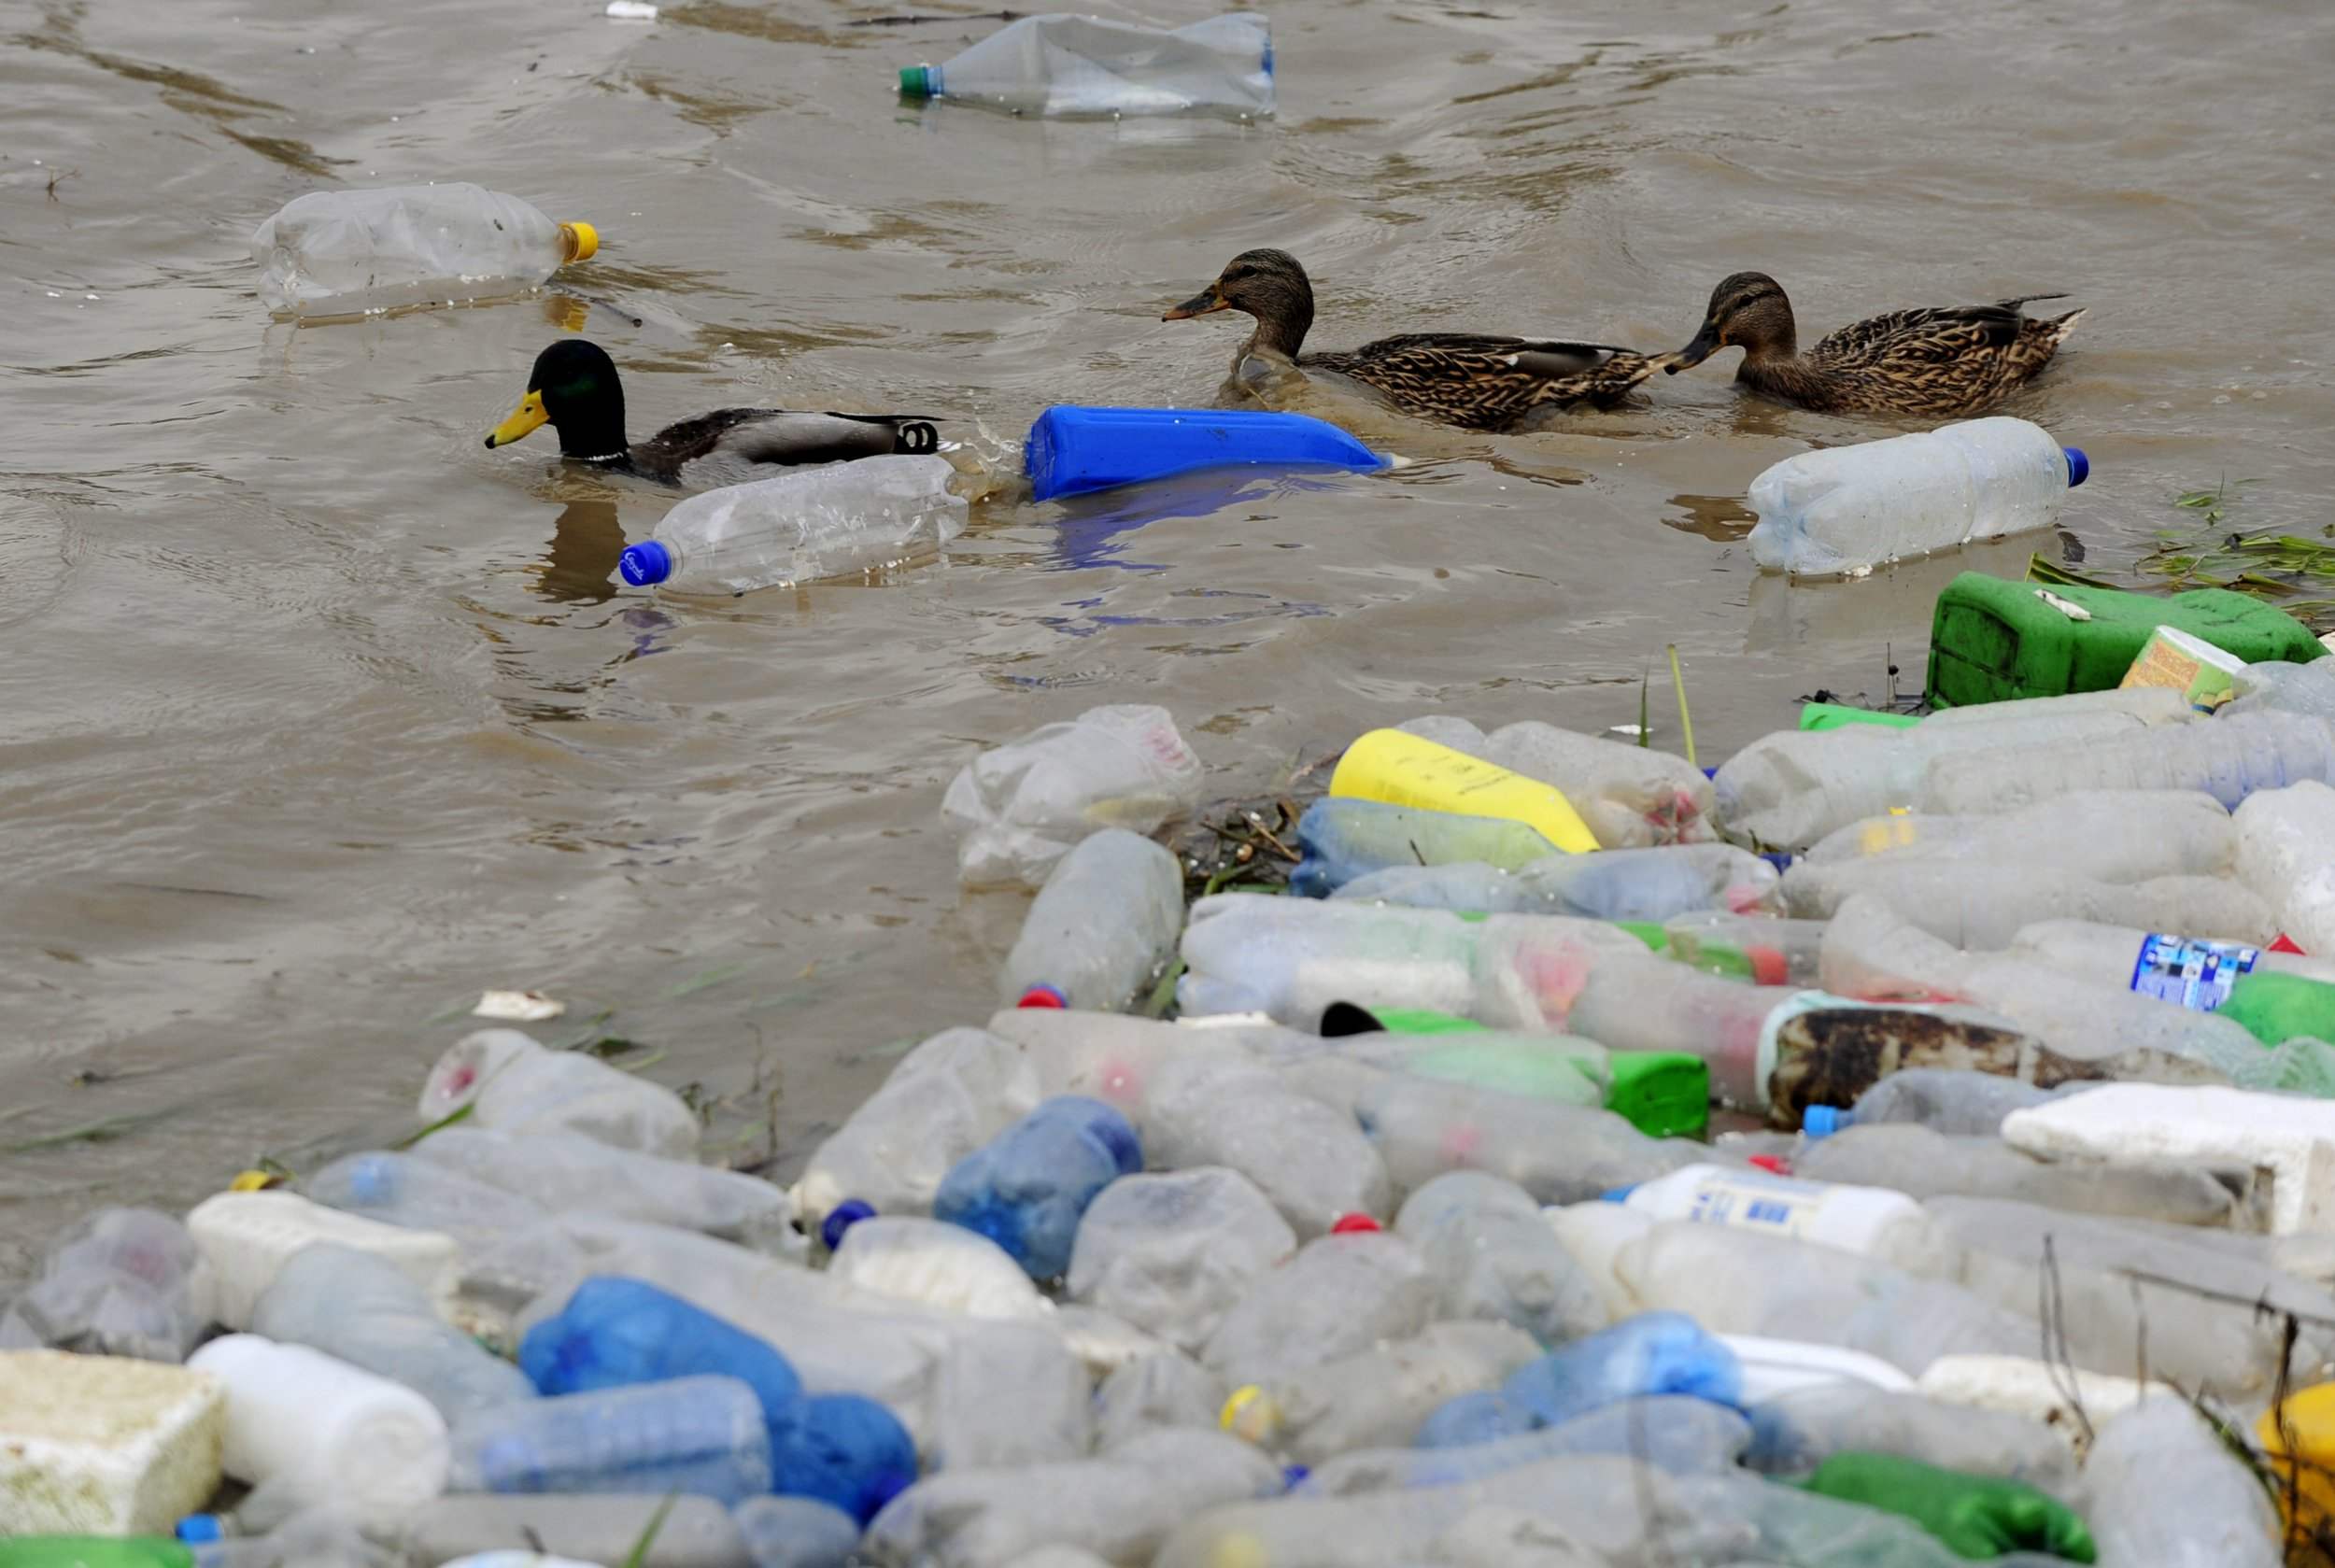 90 Percent of Seabirds Have Plastic in Their Stomachs  01-sep-2015plastic-pollution